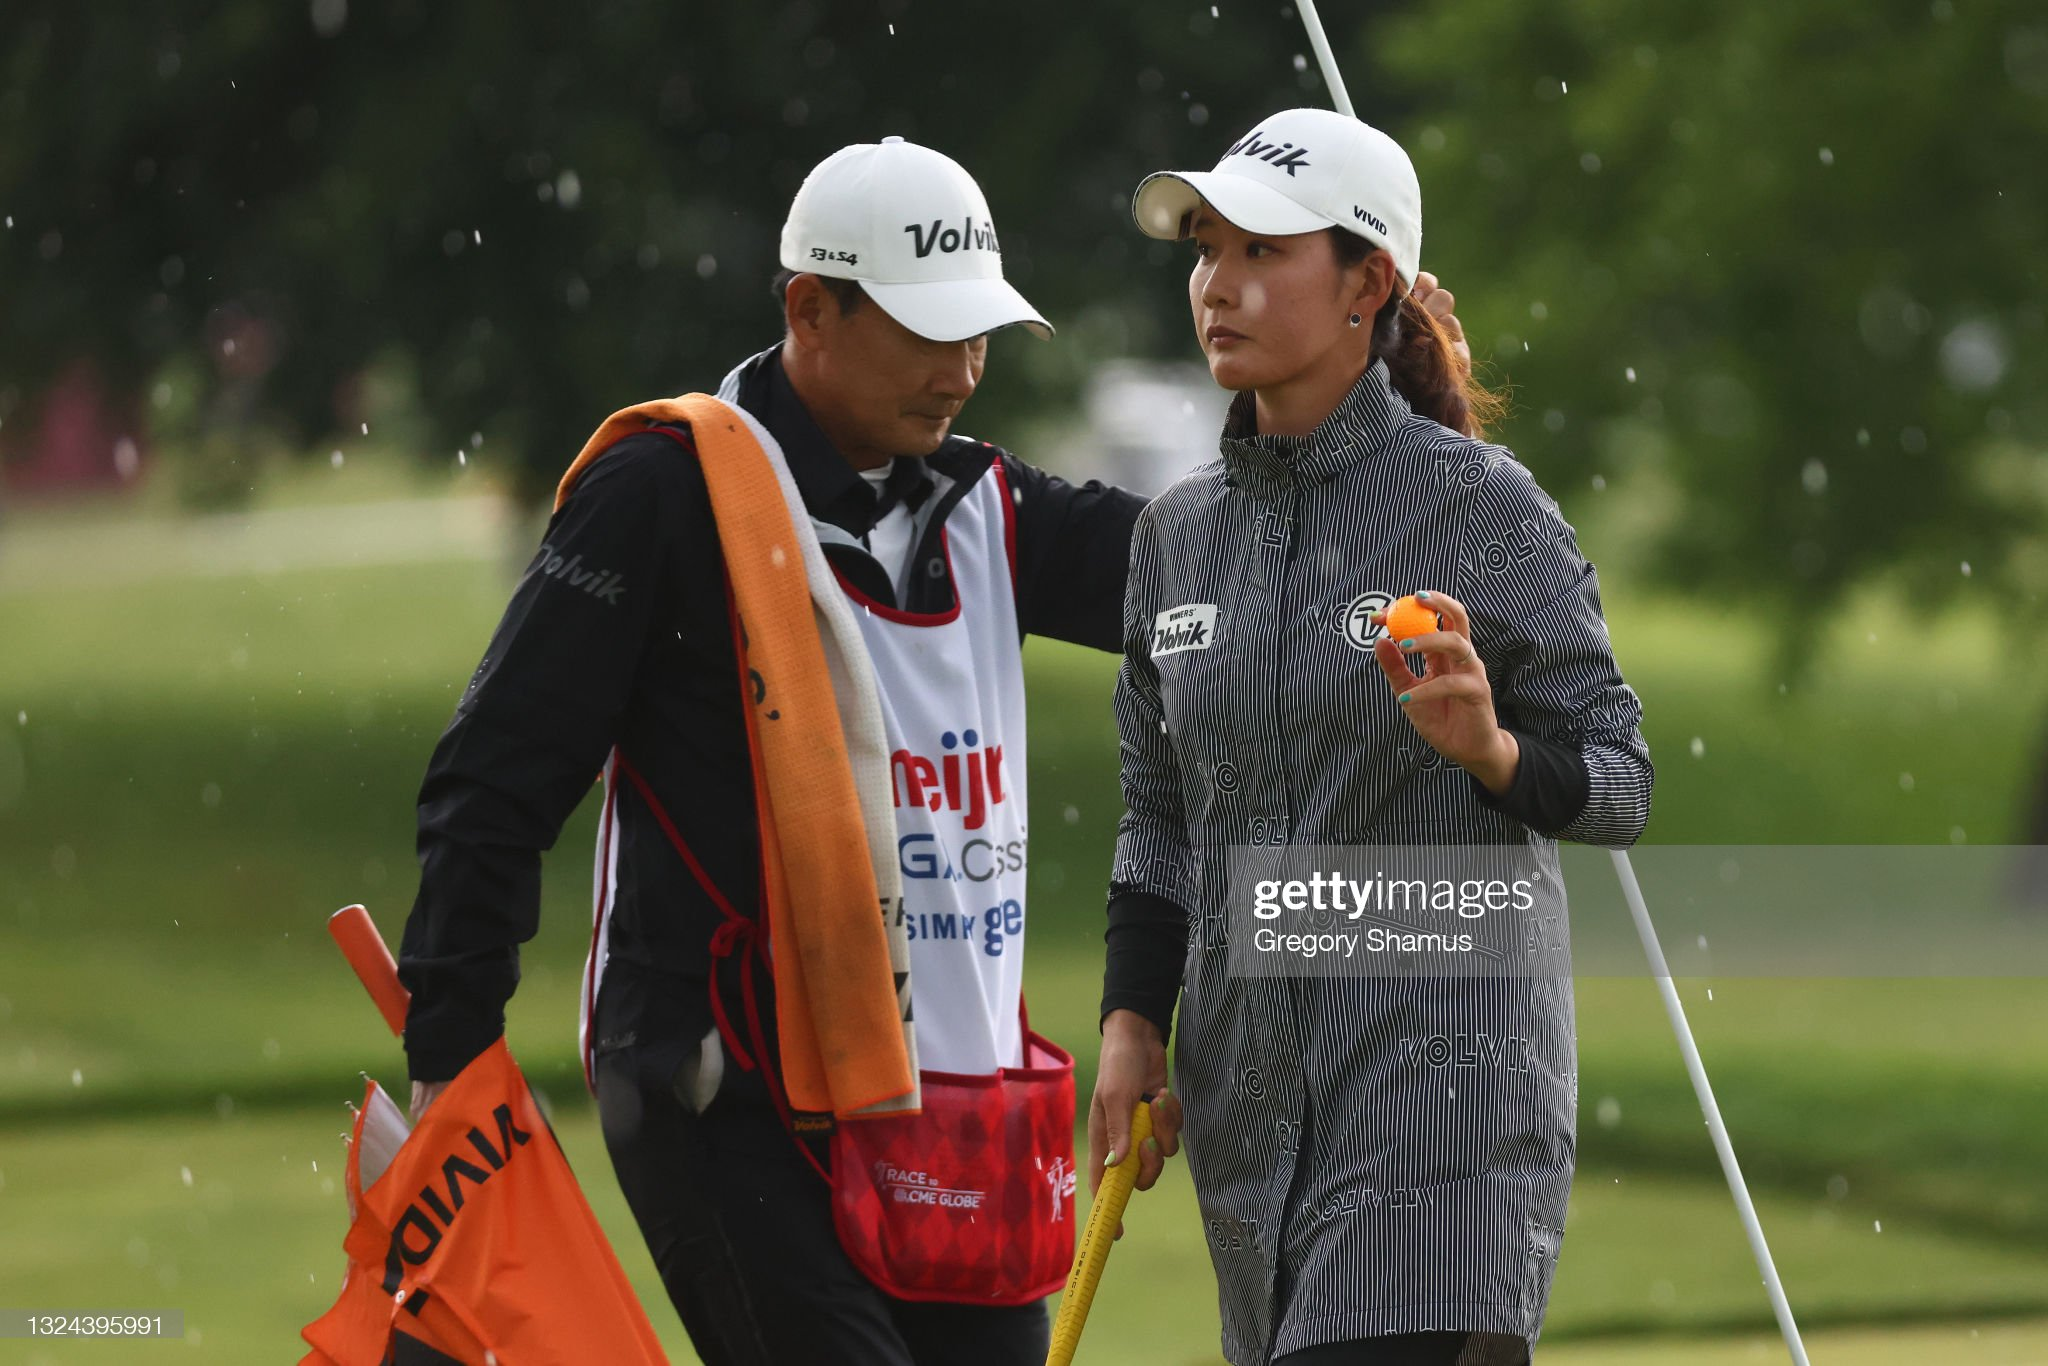 https://media.gettyimages.com/photos/chella-choi-of-korea-on-the-ninth-green-during-round-three-of-the-picture-id1324395991?s=2048x2048